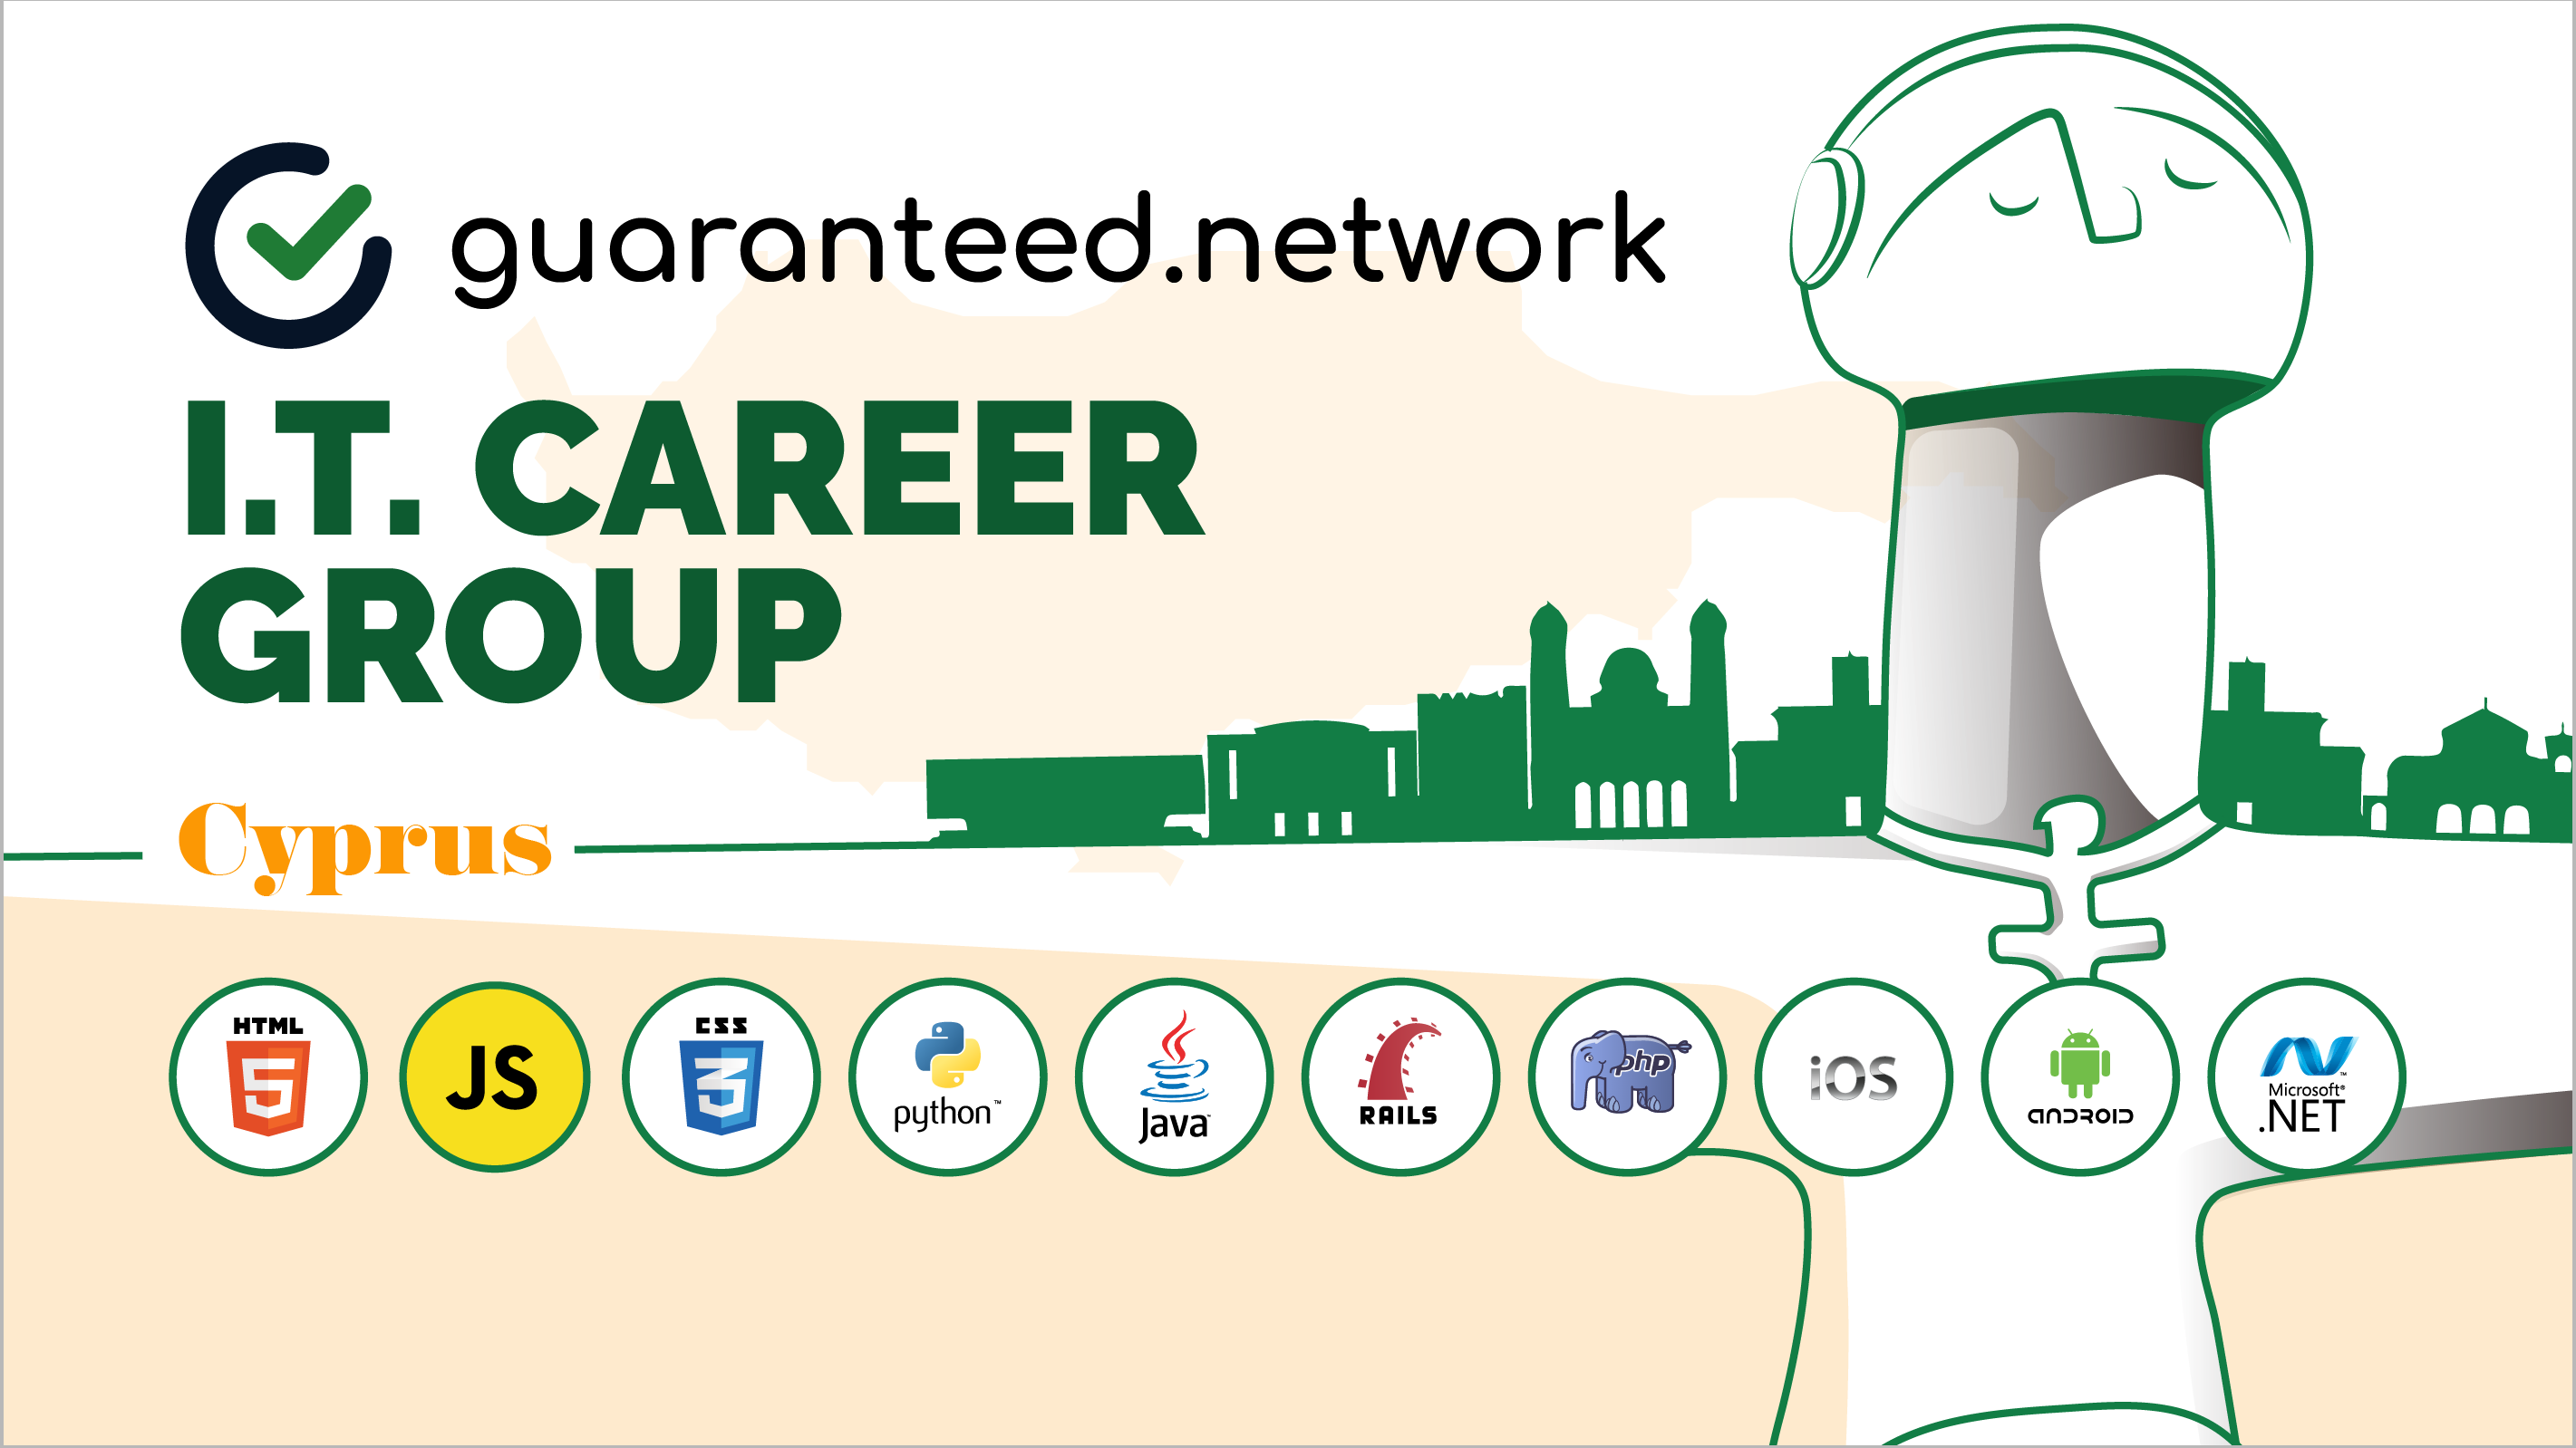 The Guaranteed Network's Cyprus I.T. Career Group